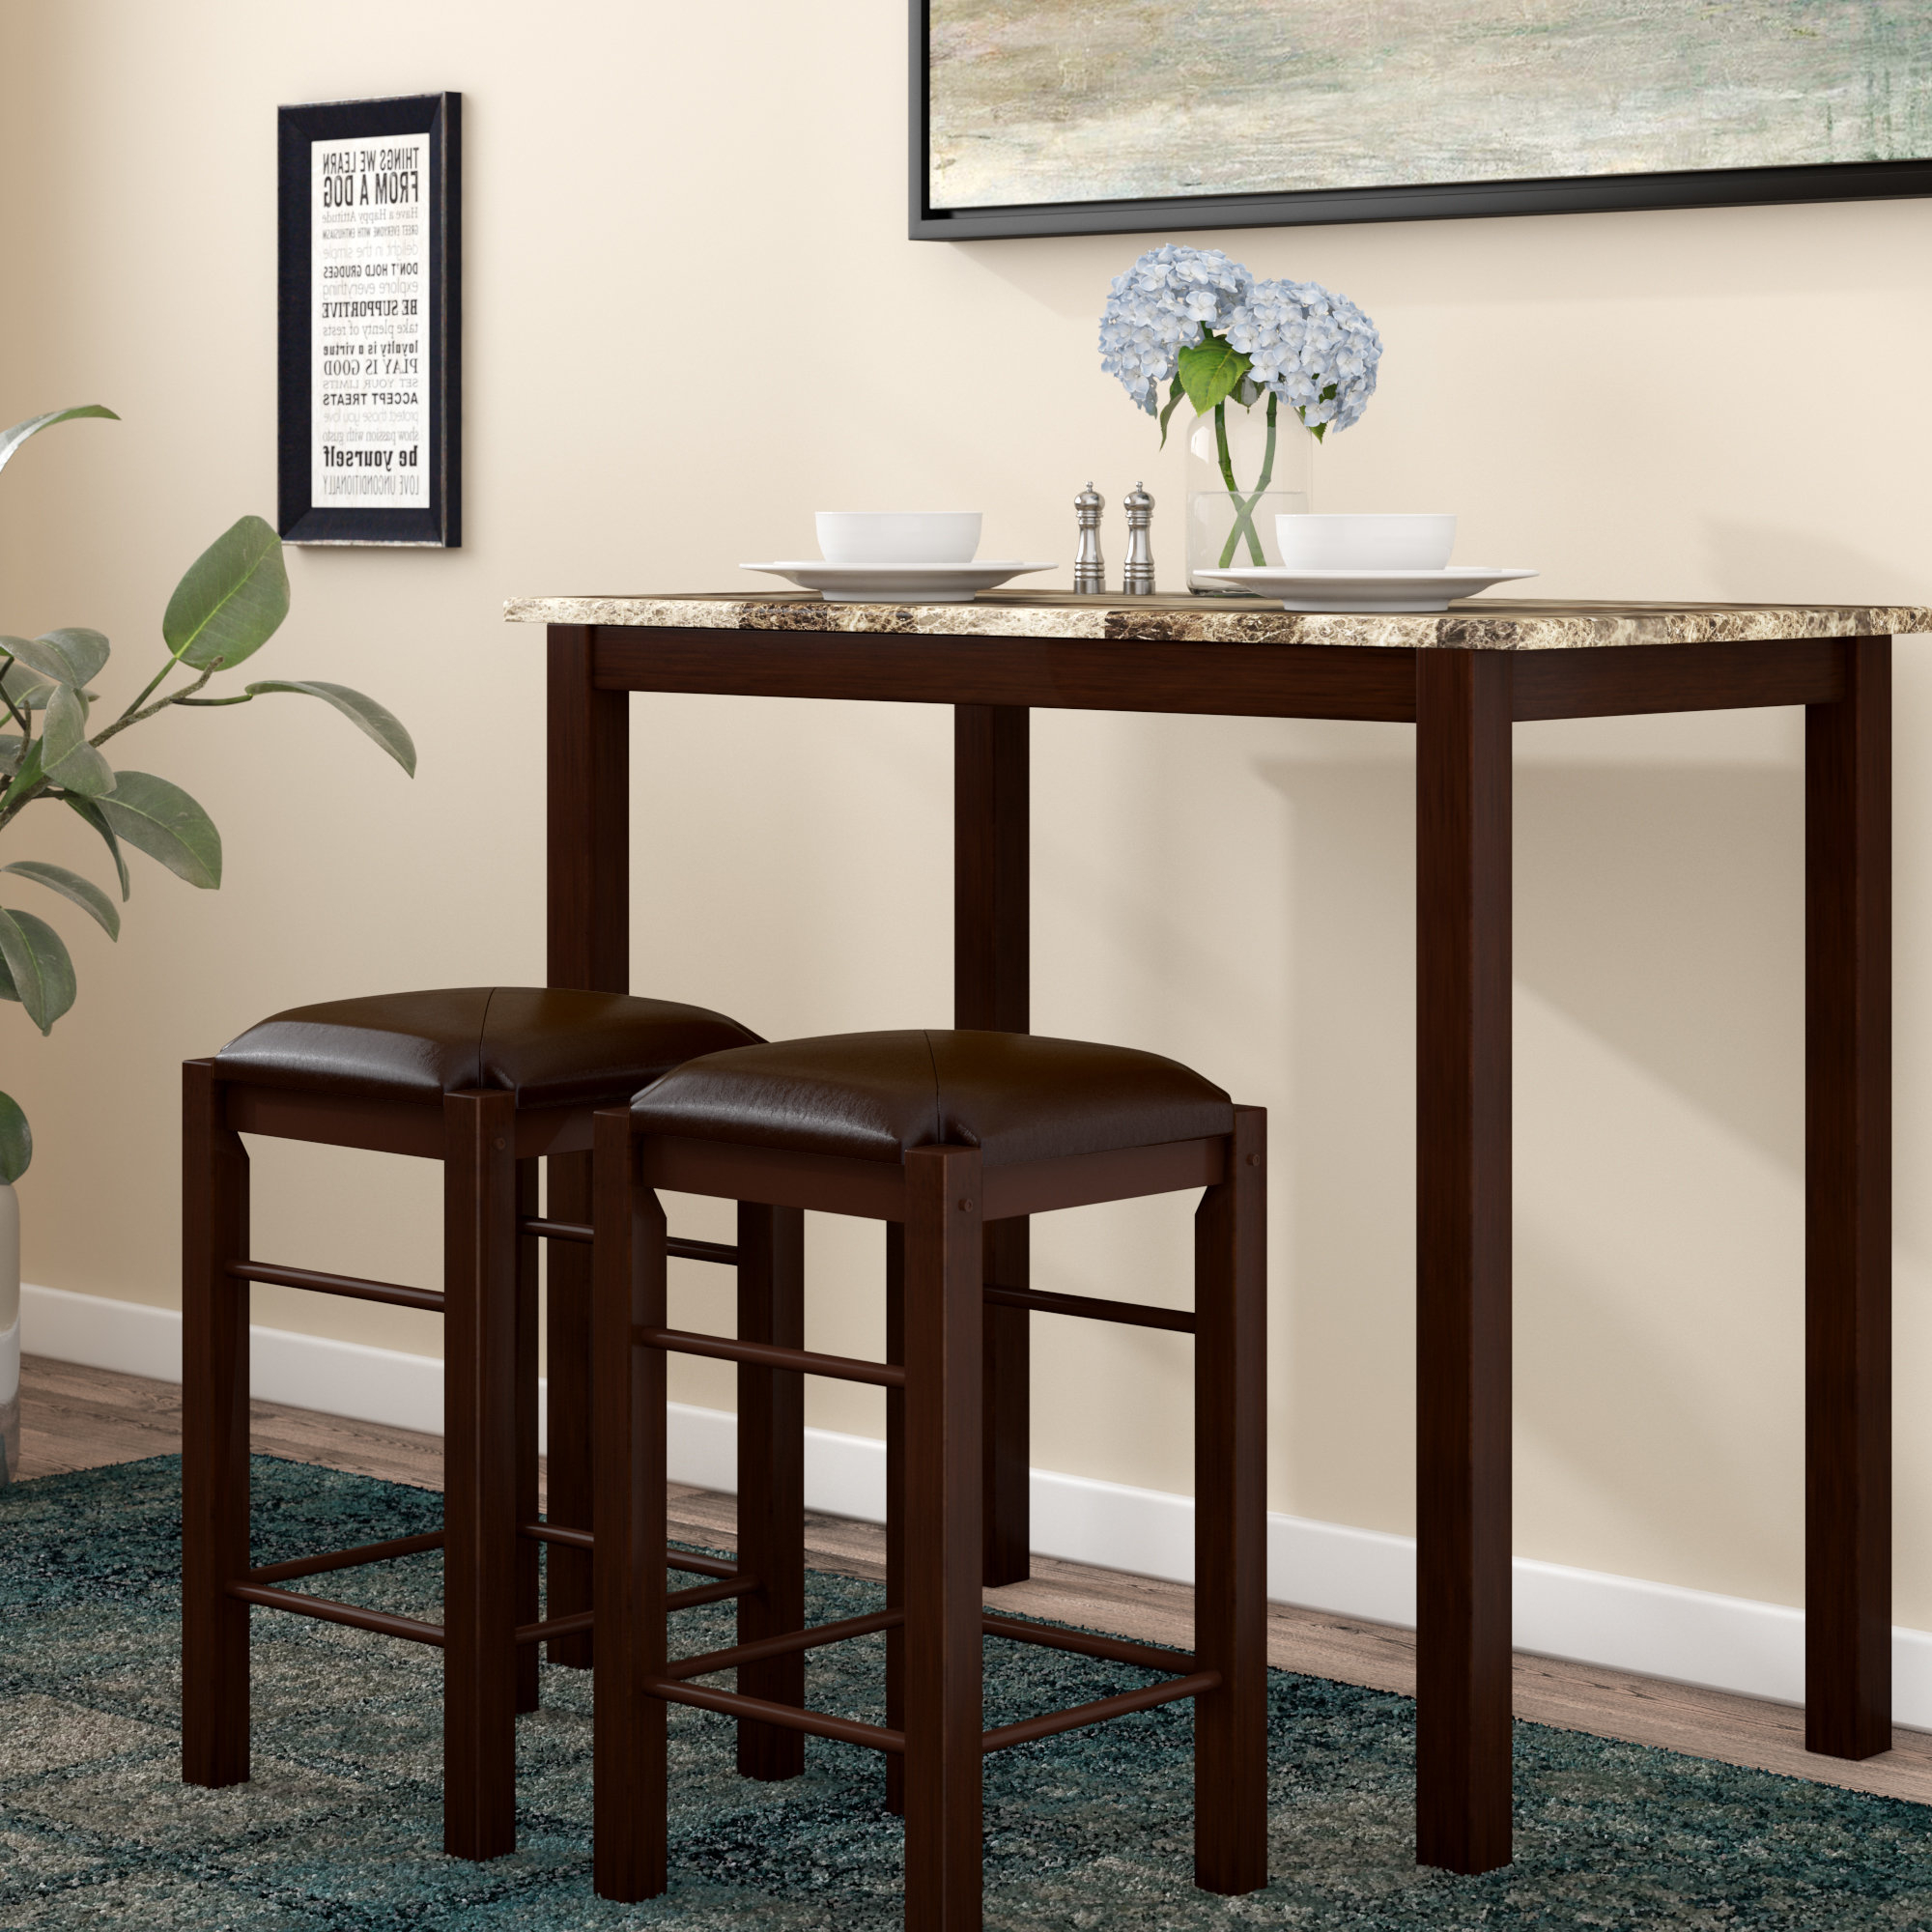 Widely Used Askern 3 Piece Counter Height Dining Sets (Set Of 3) In Winston Porter Penelope 3 Piece Counter Height Wood Dining Set (View 5 of 25)